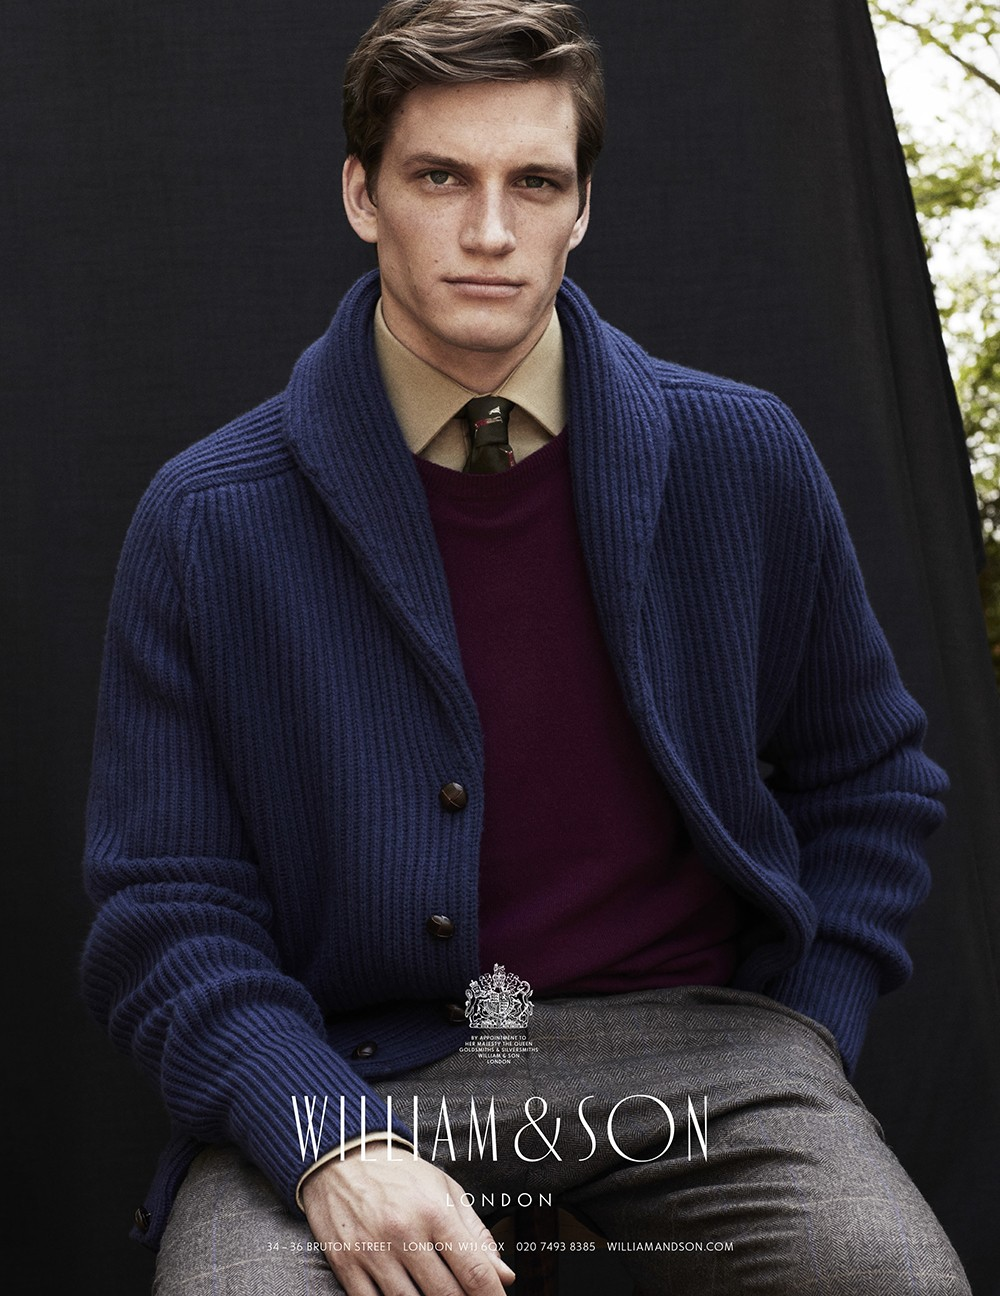 WILLIAM & SON COUNTRY CLOTHING '16 - PAUL WETHERELL